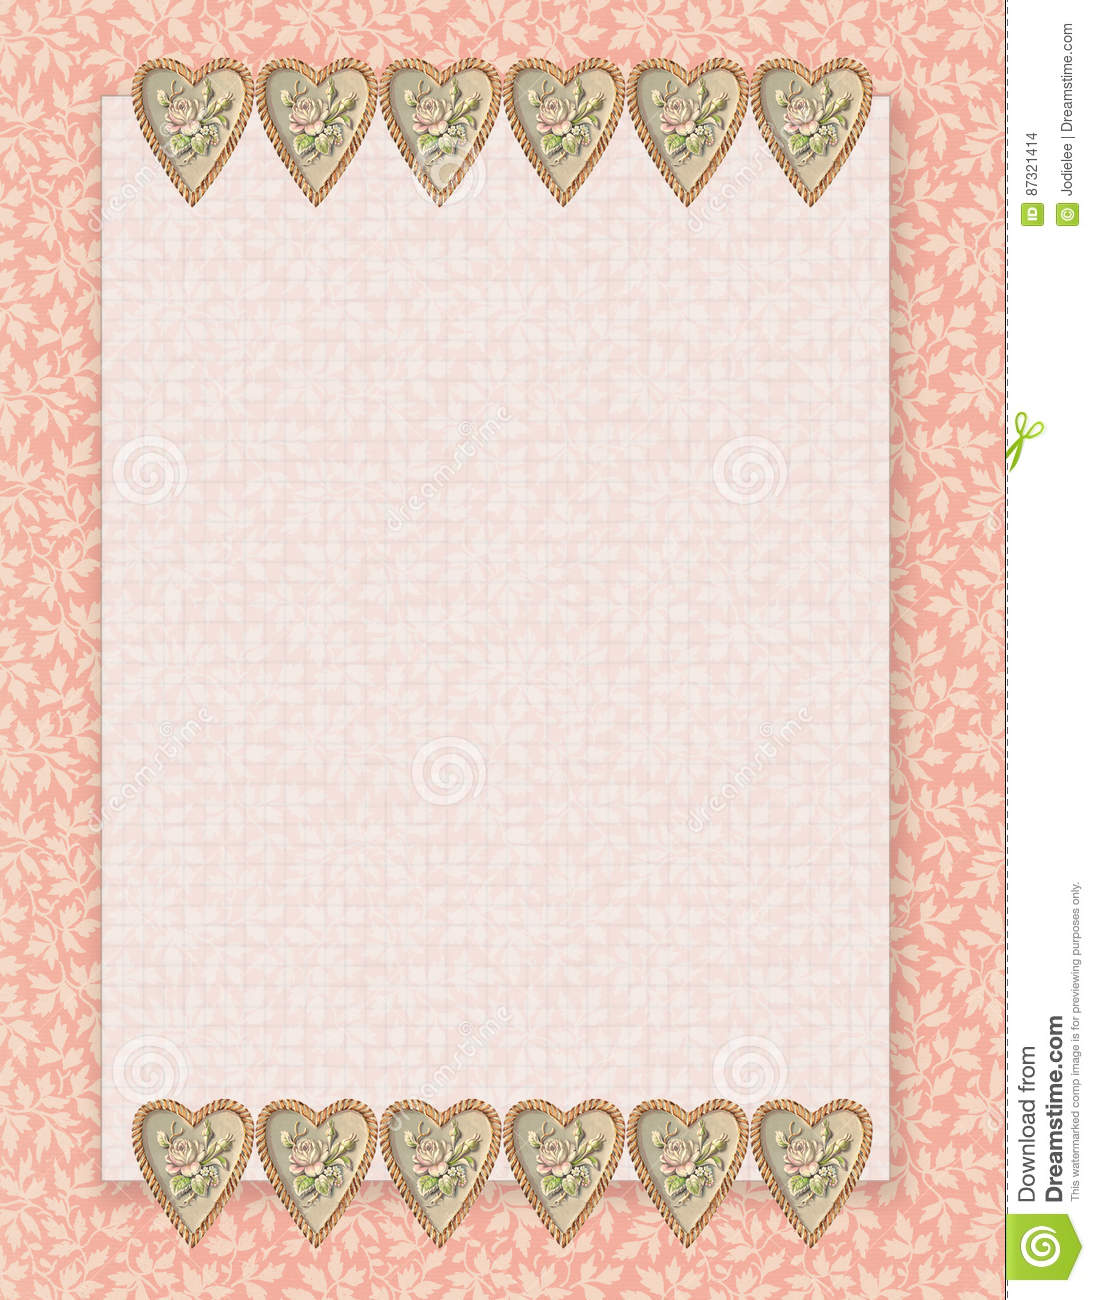 graphic about Stationary Printable called Printable Traditional Shabby Stylish Design and style Floral Stationary Upon